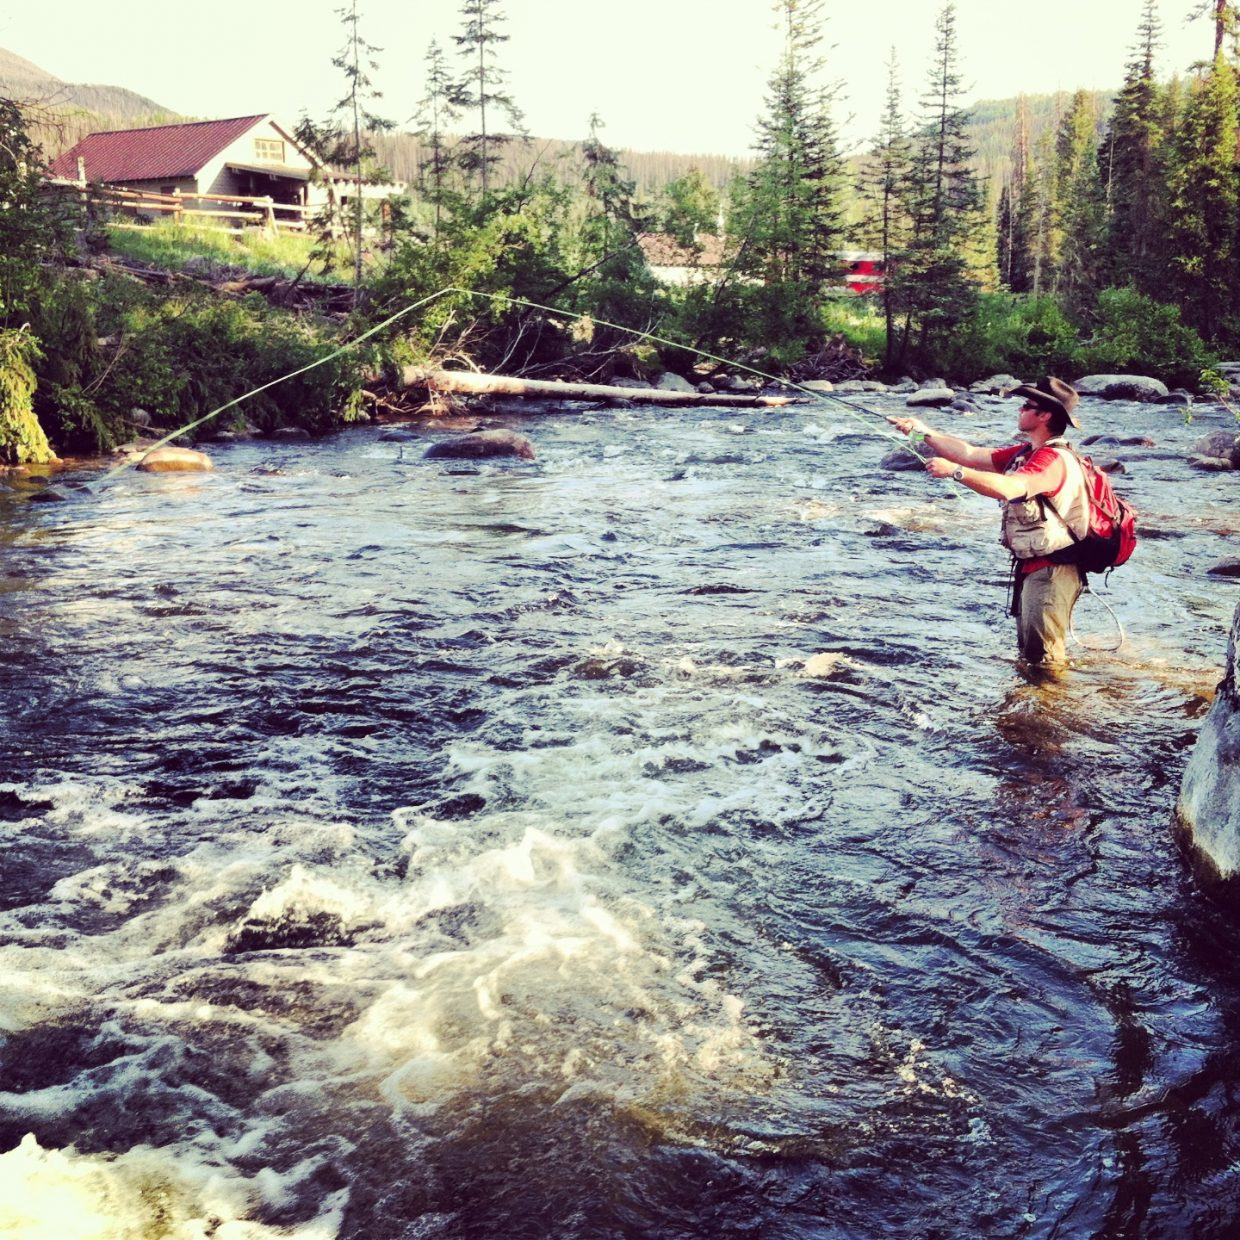 Ben Holdridge fishing. Forest ranger station in the back ground up Diamond Park. Submitted by: Shara Ludlum